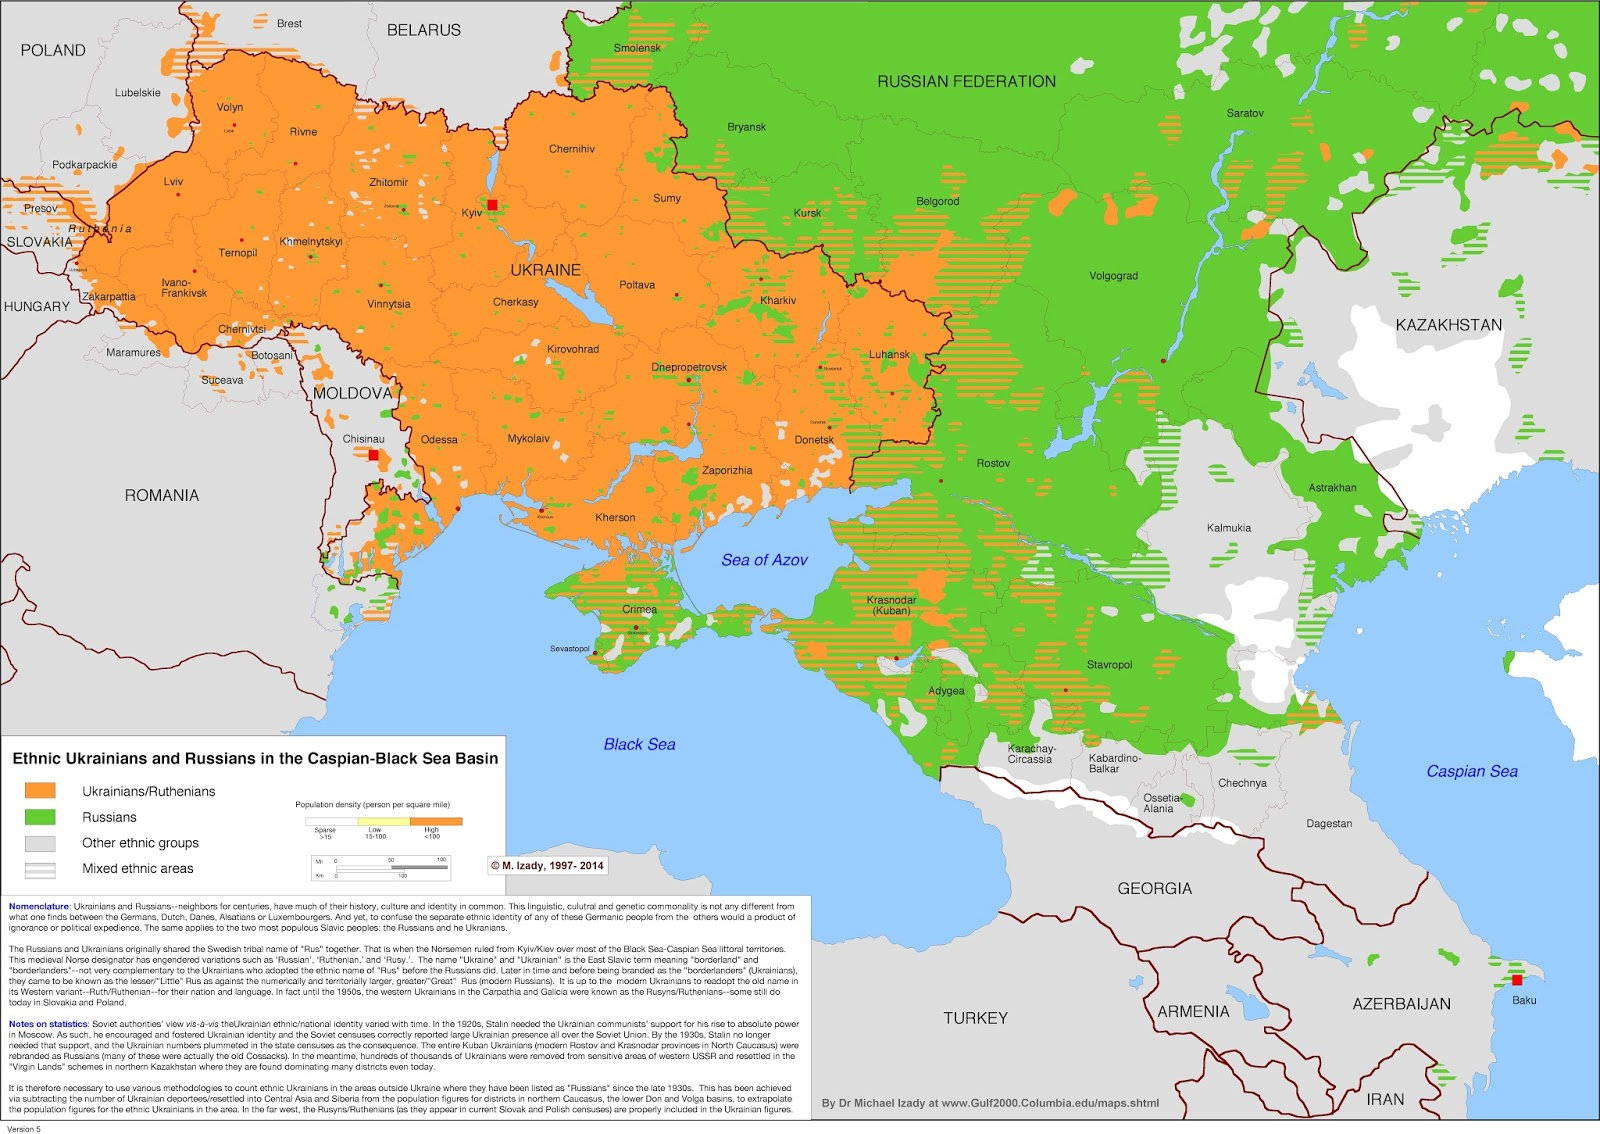 Ethnic Ukrainians & Russians in the Caspian-Black sea basin